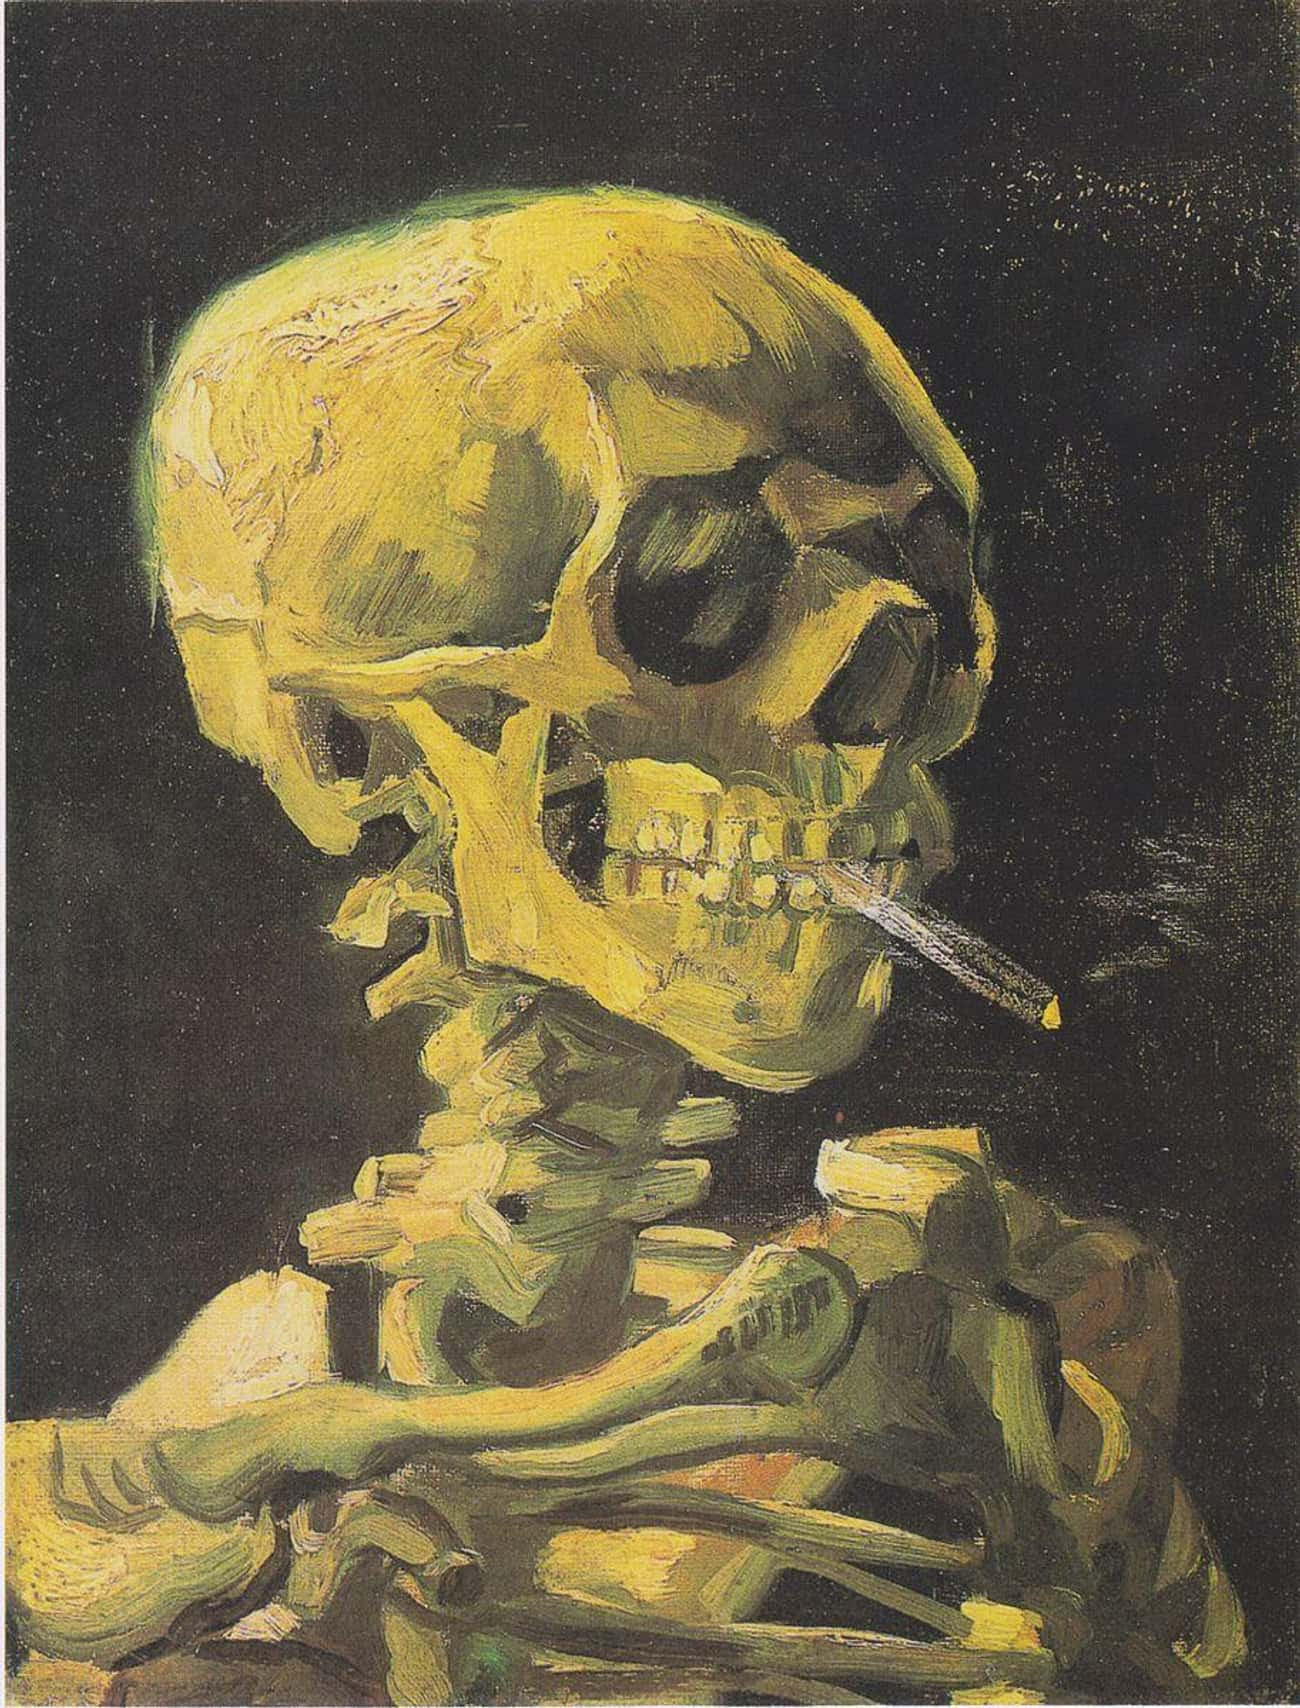 'Skull With A Burning Cigarett is listed (or ranked) 4 on the list The Darkest Paintings From Art History Any Goth Will Appreciate